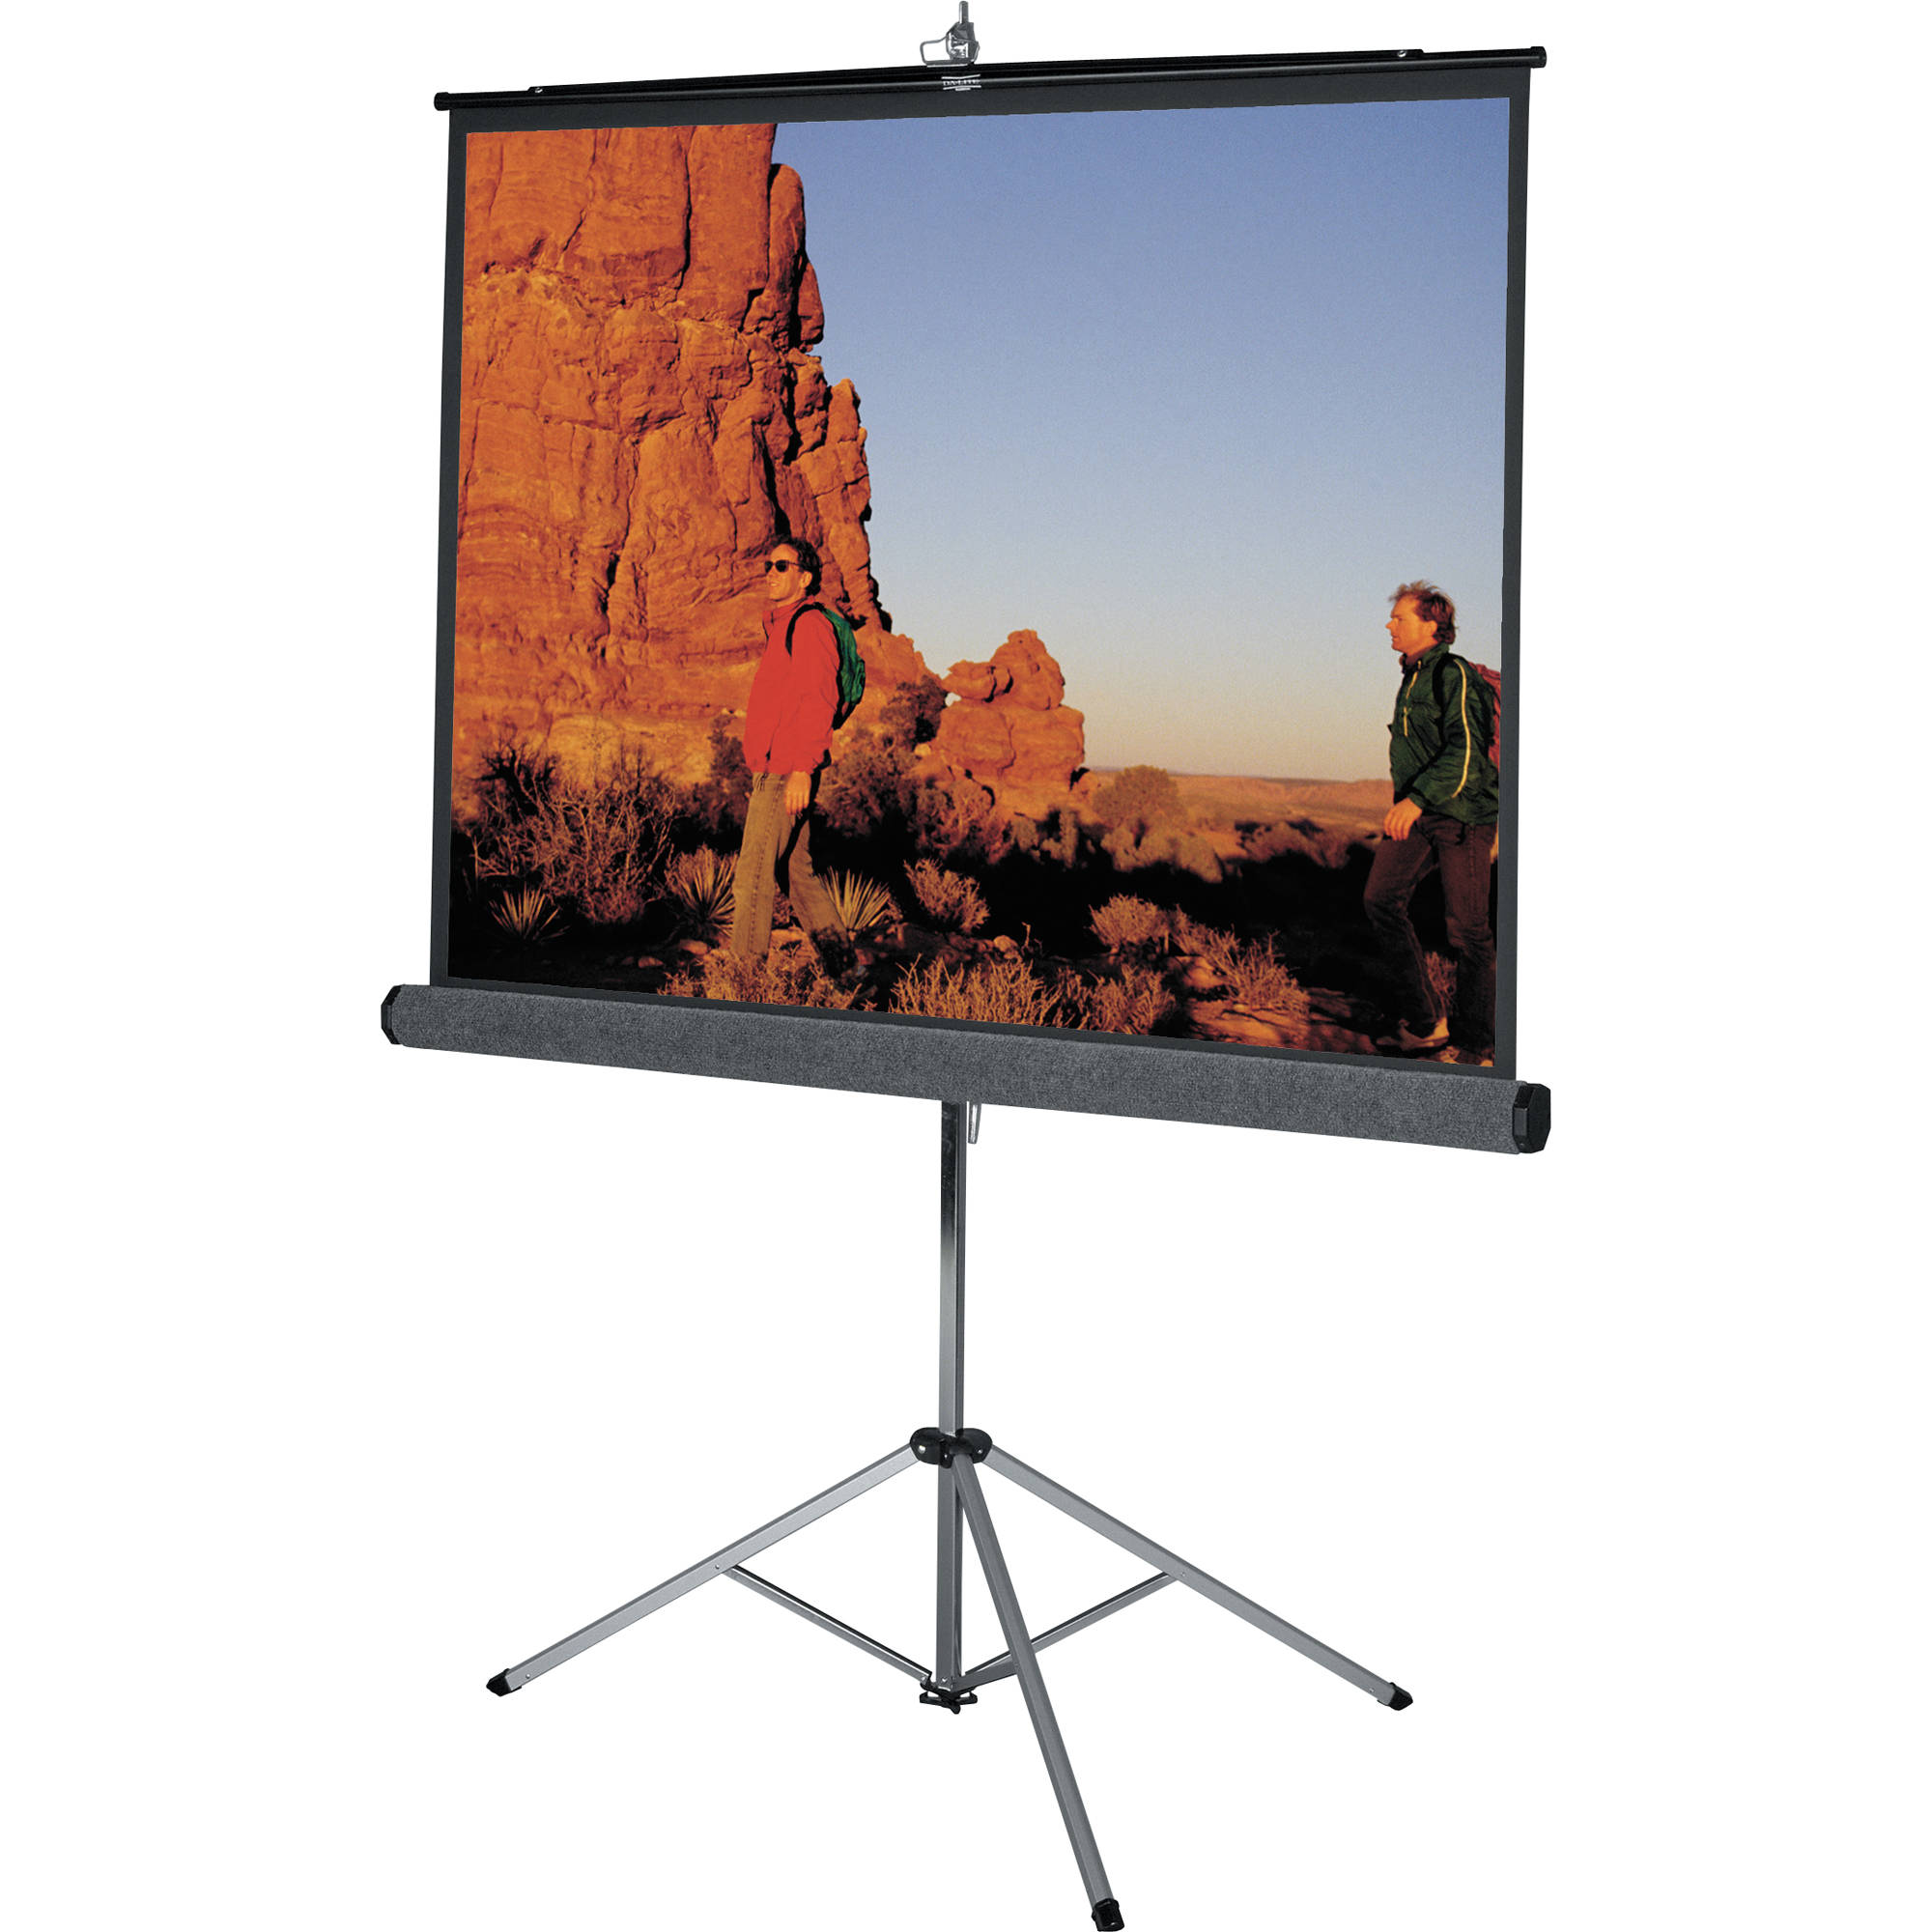 da lite projection screens The projector screen store is pleased to offer custom size projection screens that are built to order for more information please contact us at 1-800-637-3181, chat with us, or send us an email at sales@projectorscreenstorecom.